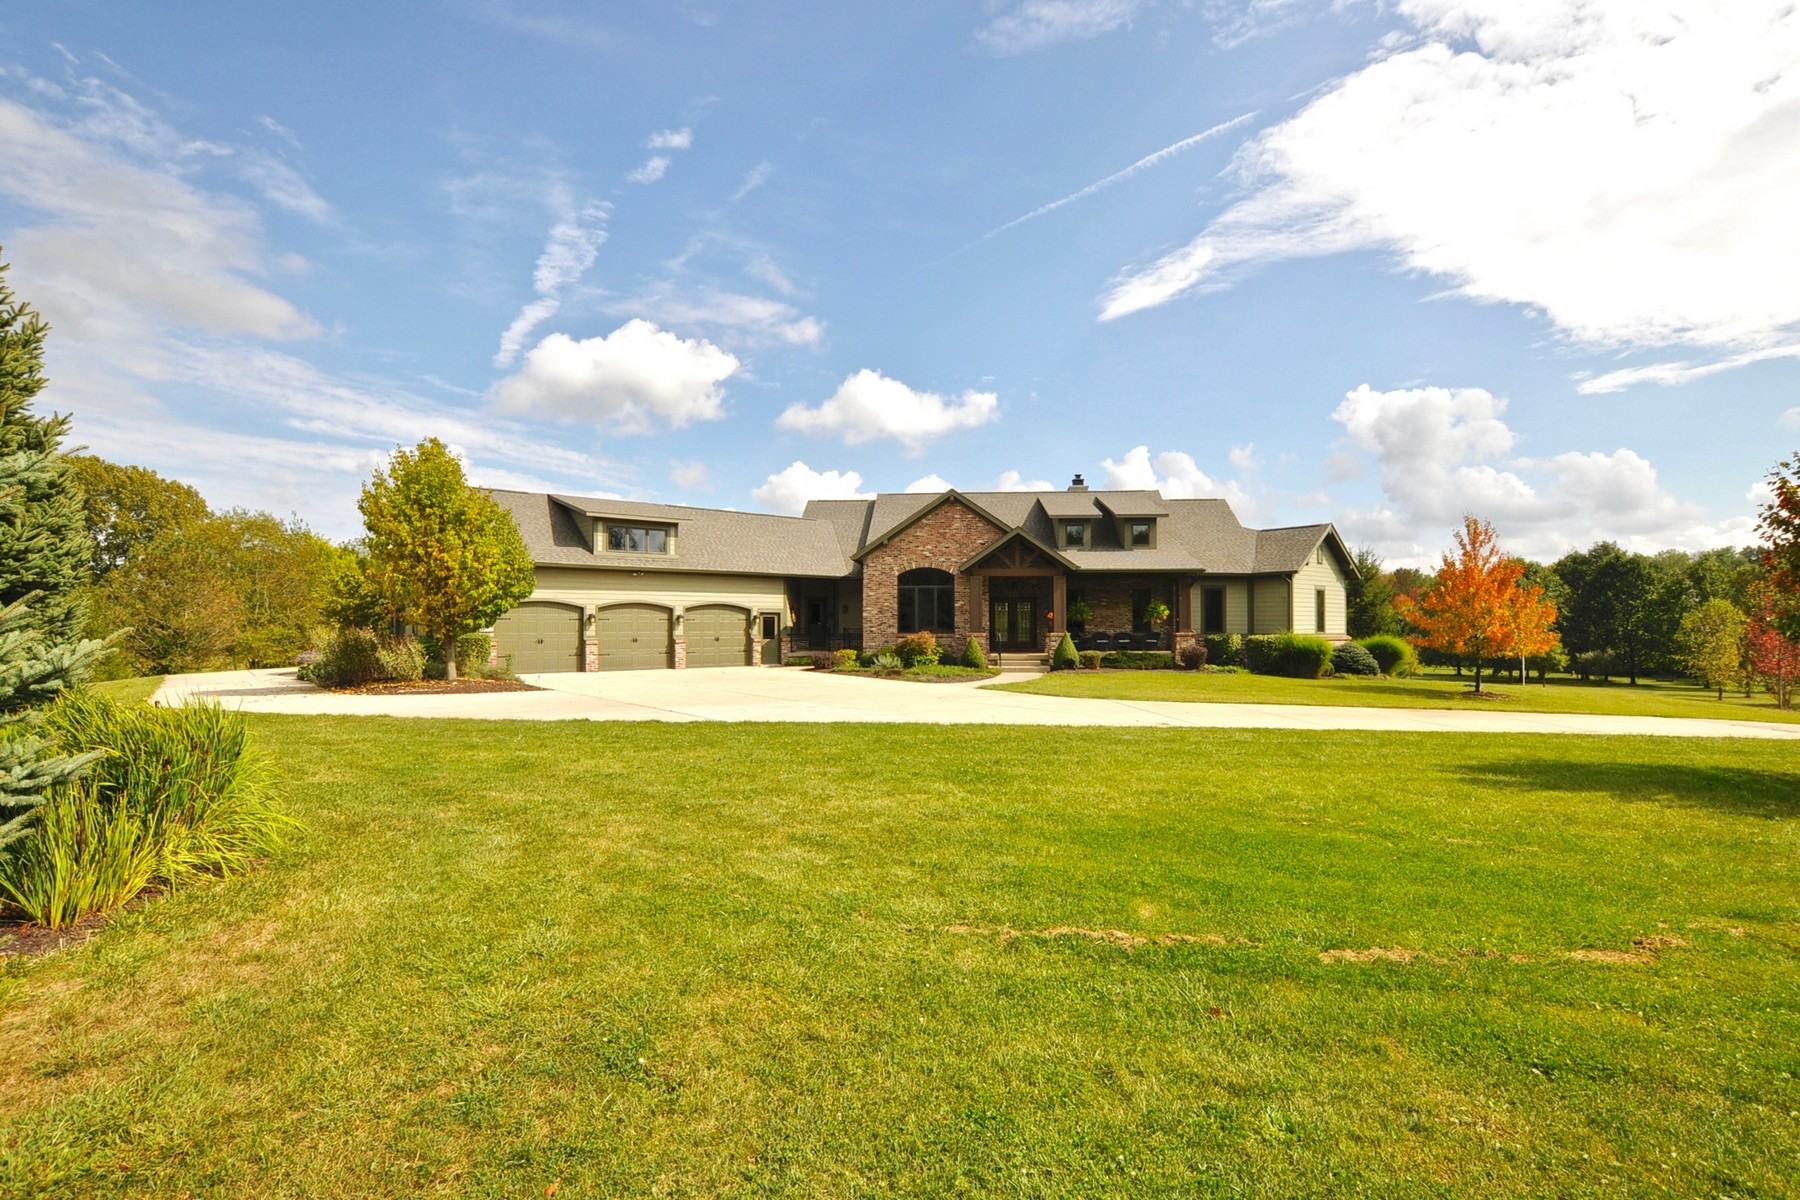 Single Family Home for Sale at Stunning 11 Acre Estate 16311 Joliet Road Westfield, Indiana 46074 United States